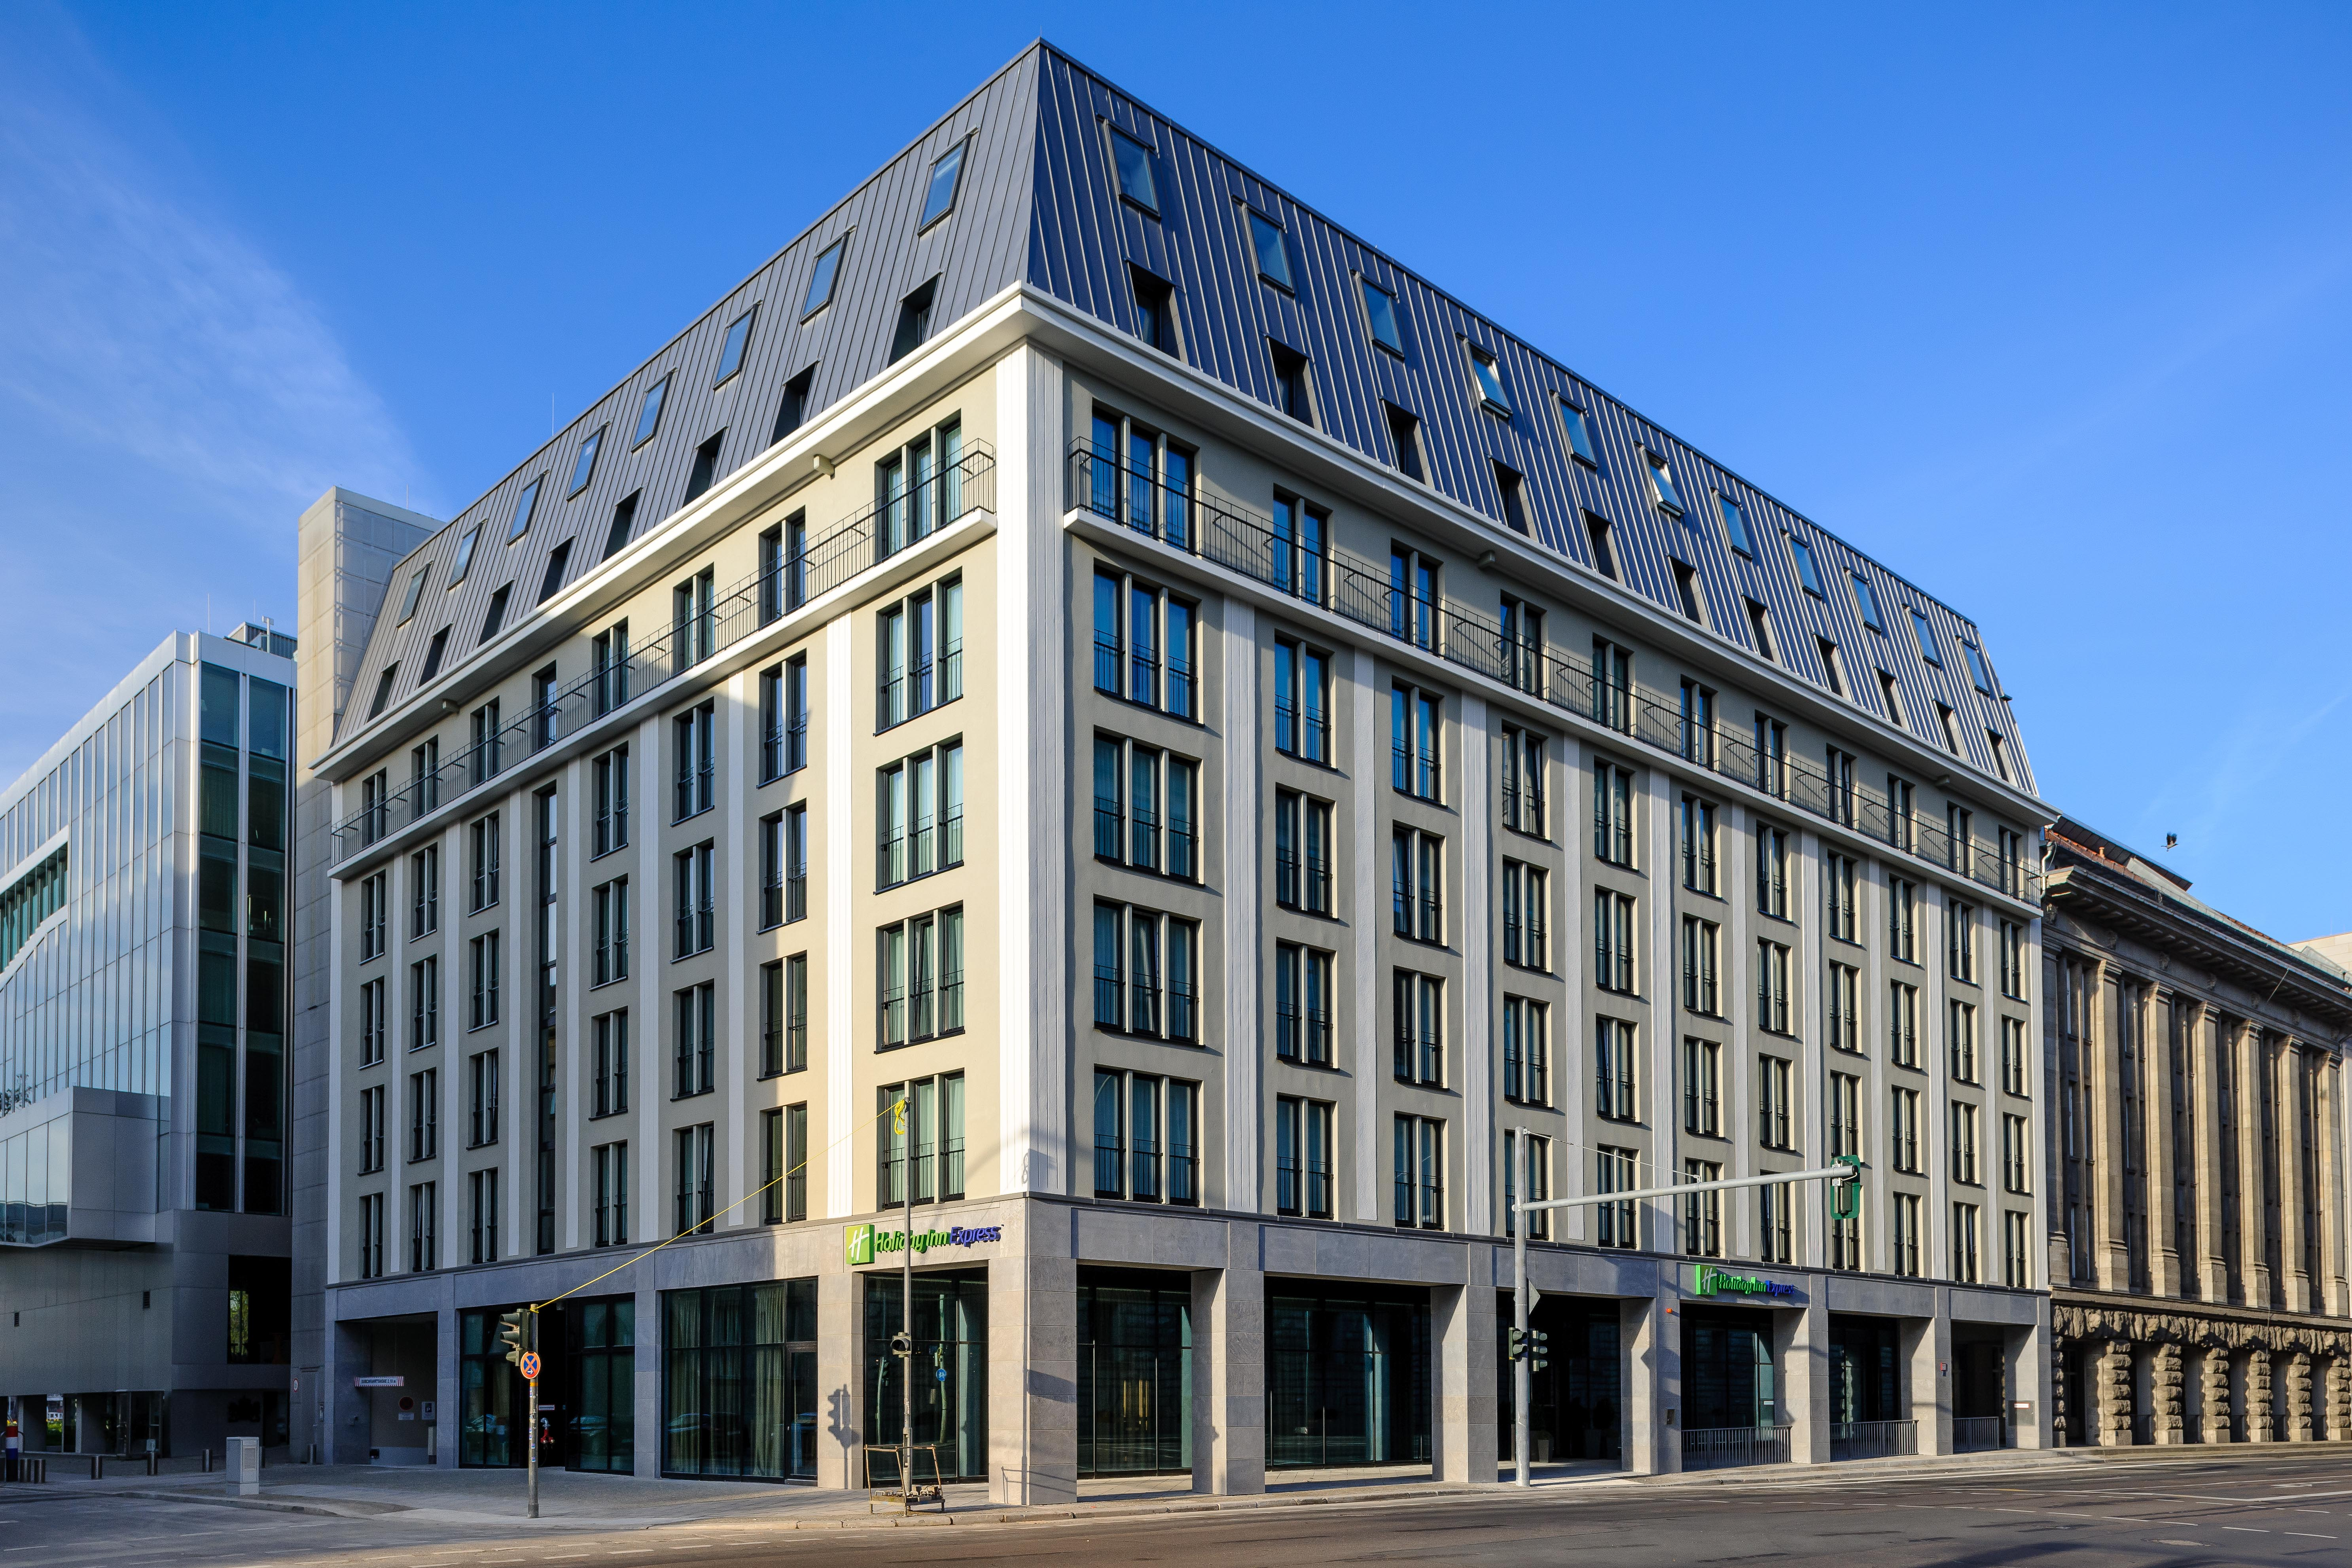 Holiday inn express arrives in the heart of berlin s for Alexanderplatz hotel